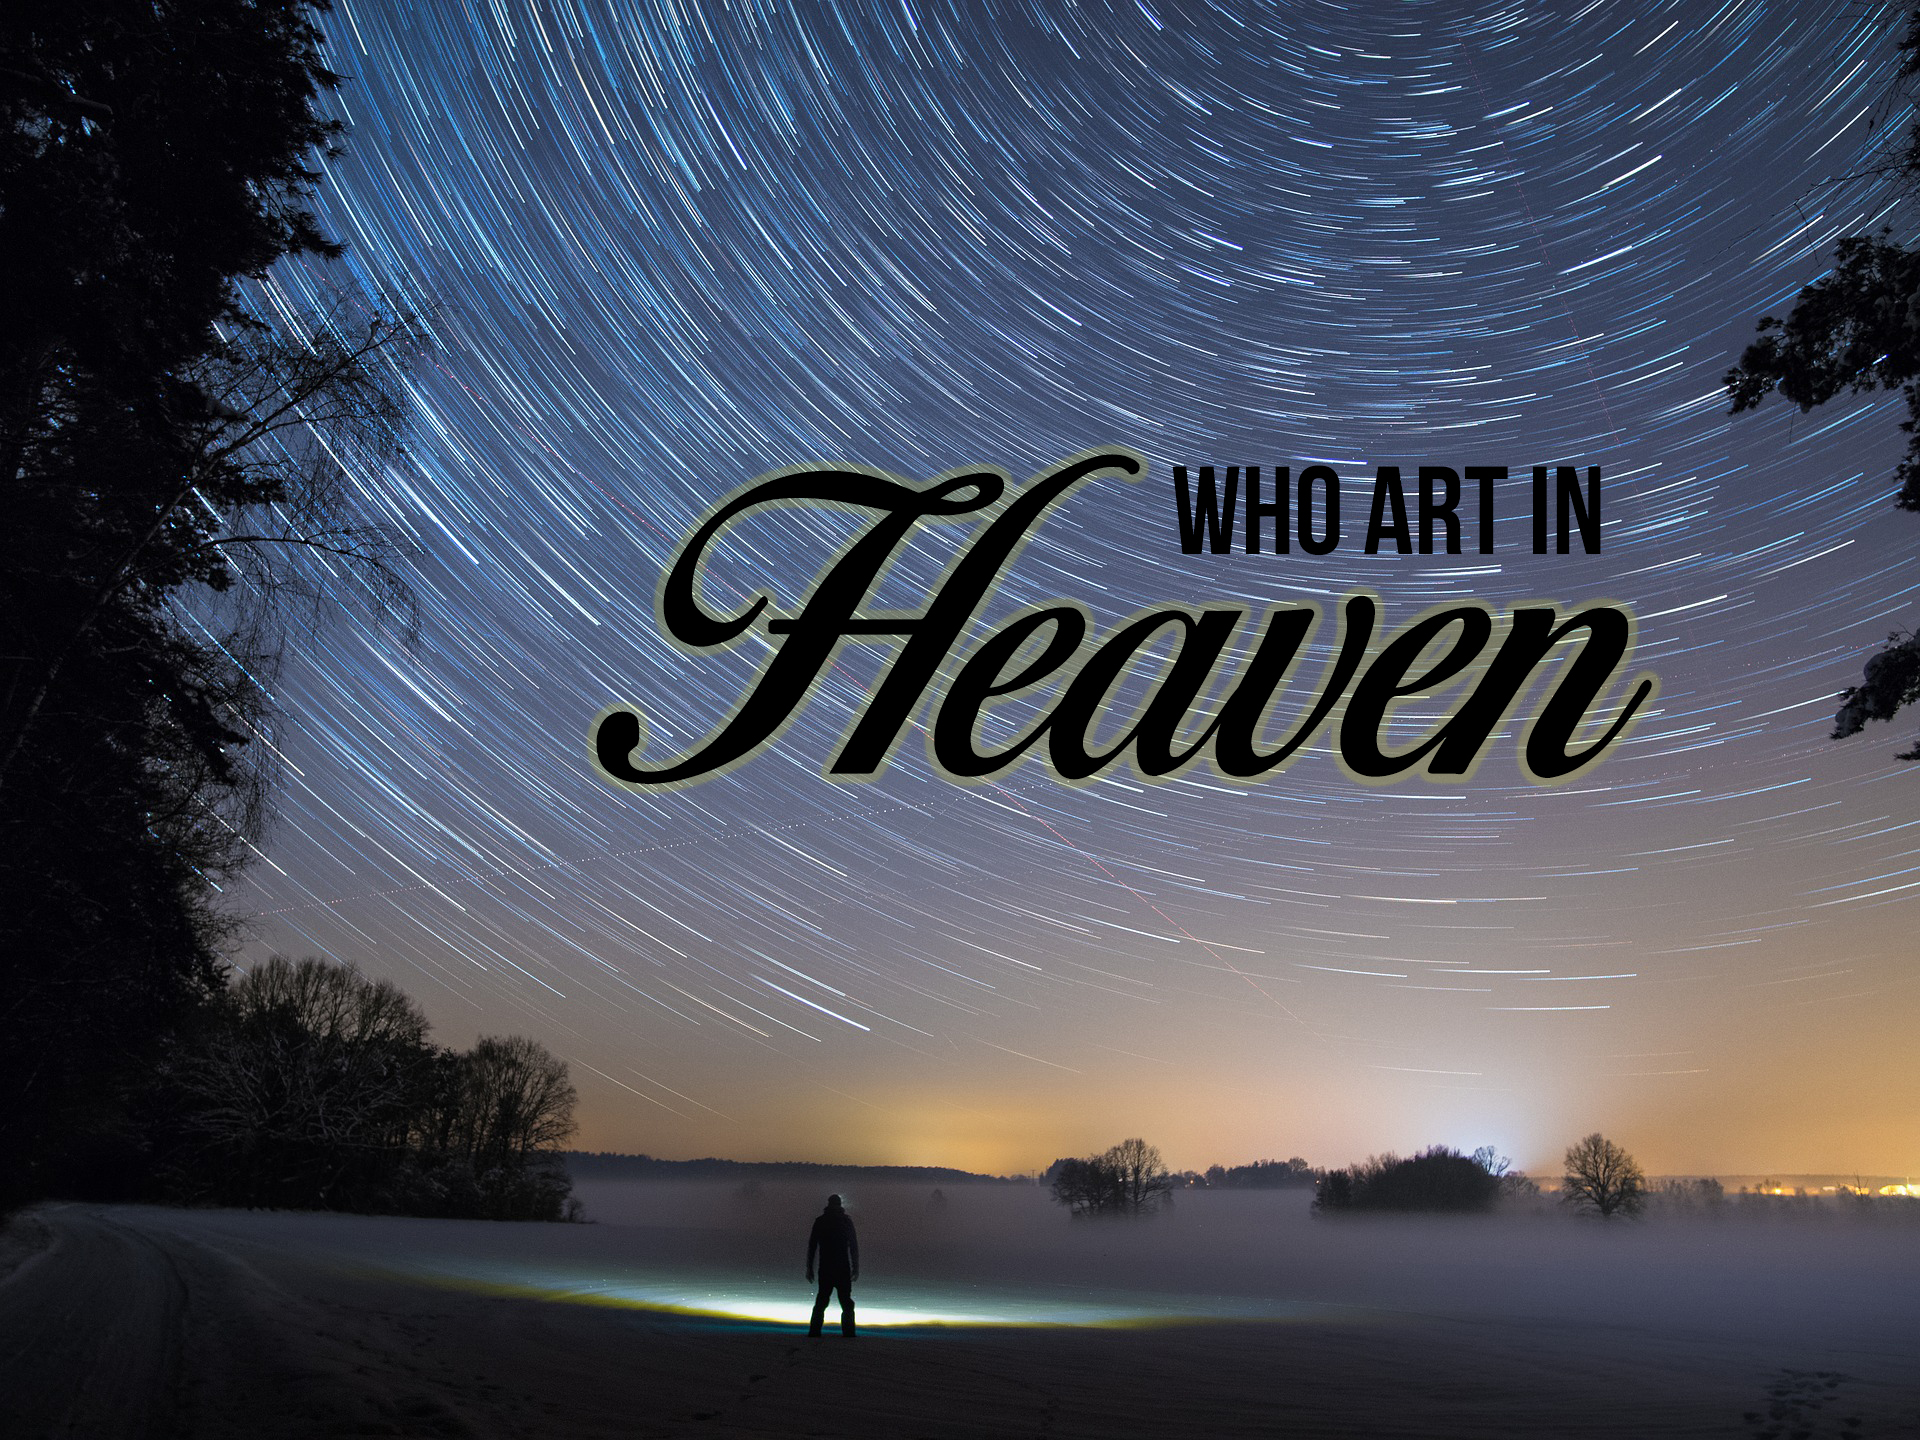 Our Father Who Art in Heaven, God's Perspective